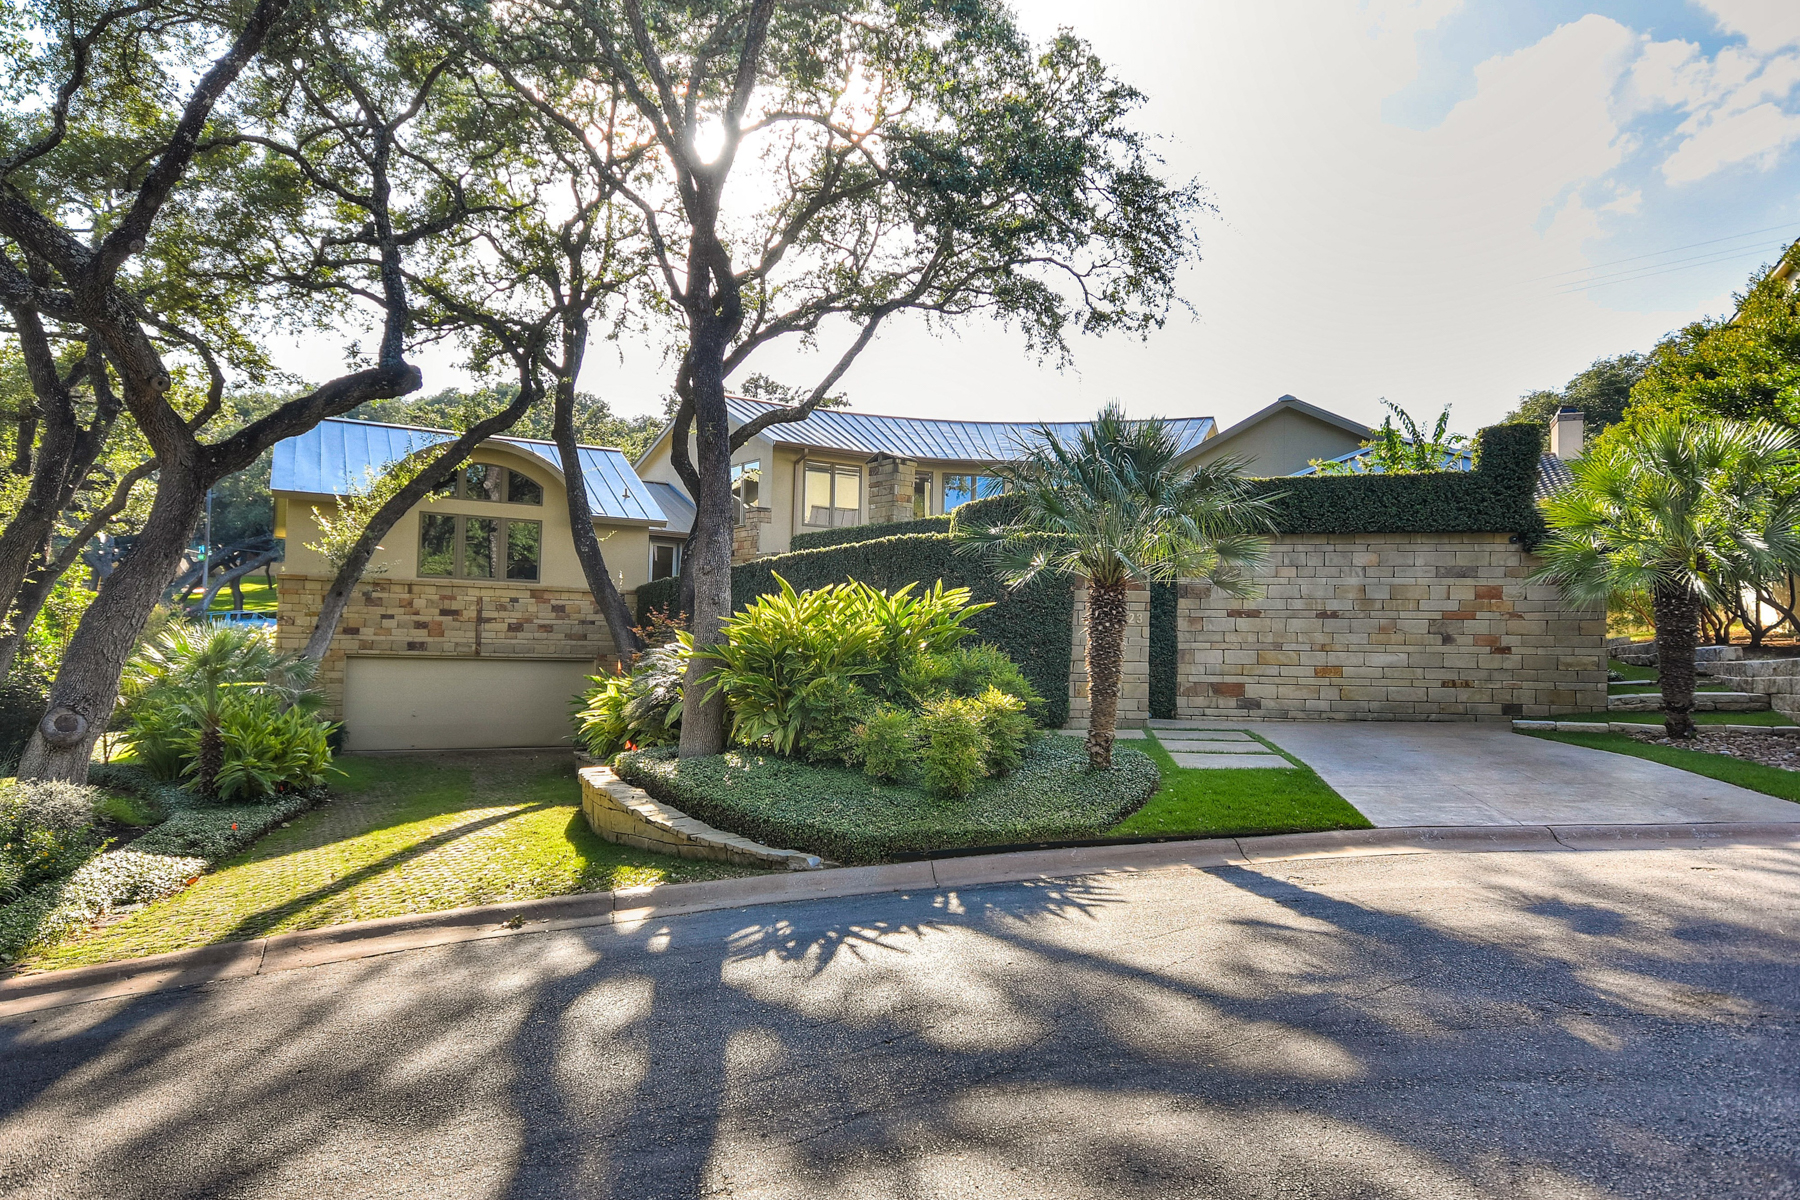 Single Family Home for Sale at Contemporary Masterpiece in Oak Hills Park Estates 23 Oak Hill Pl San Antonio, Texas 78229 United States